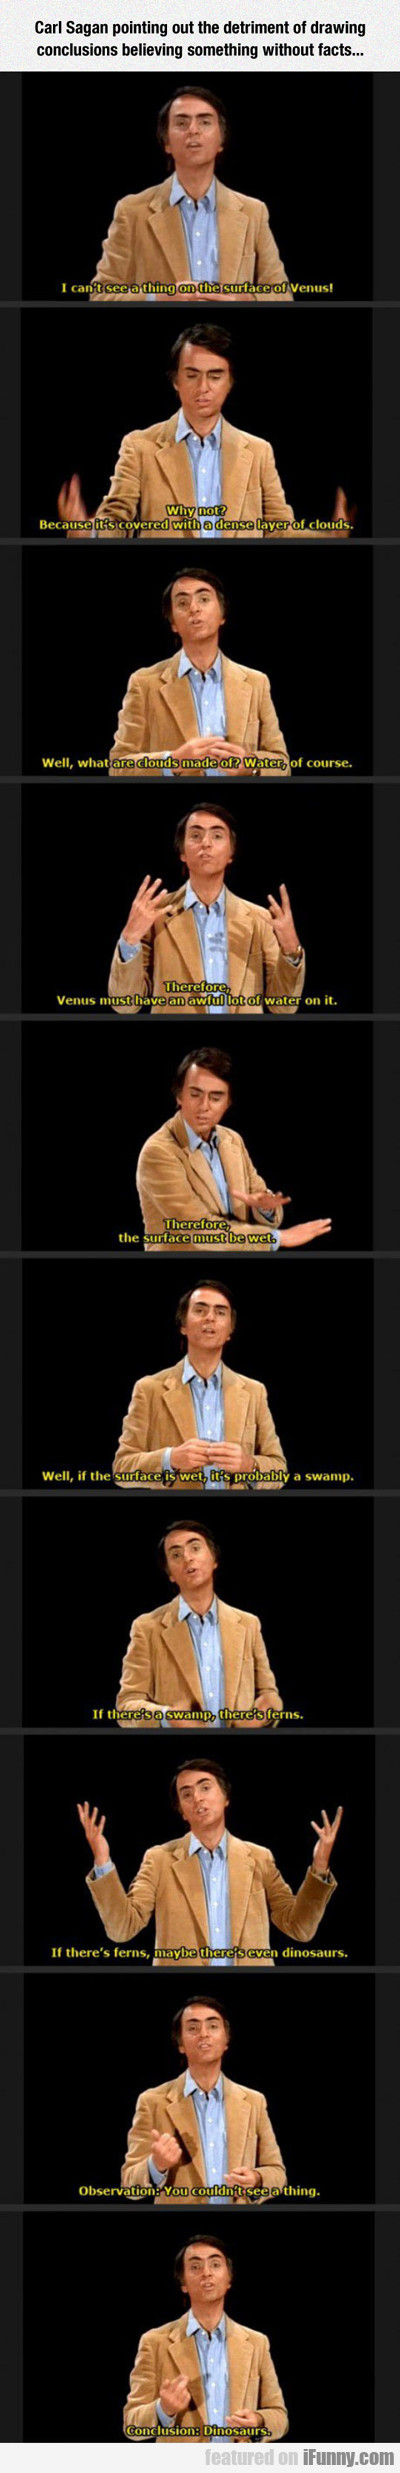 Carl Sagan pointing out..